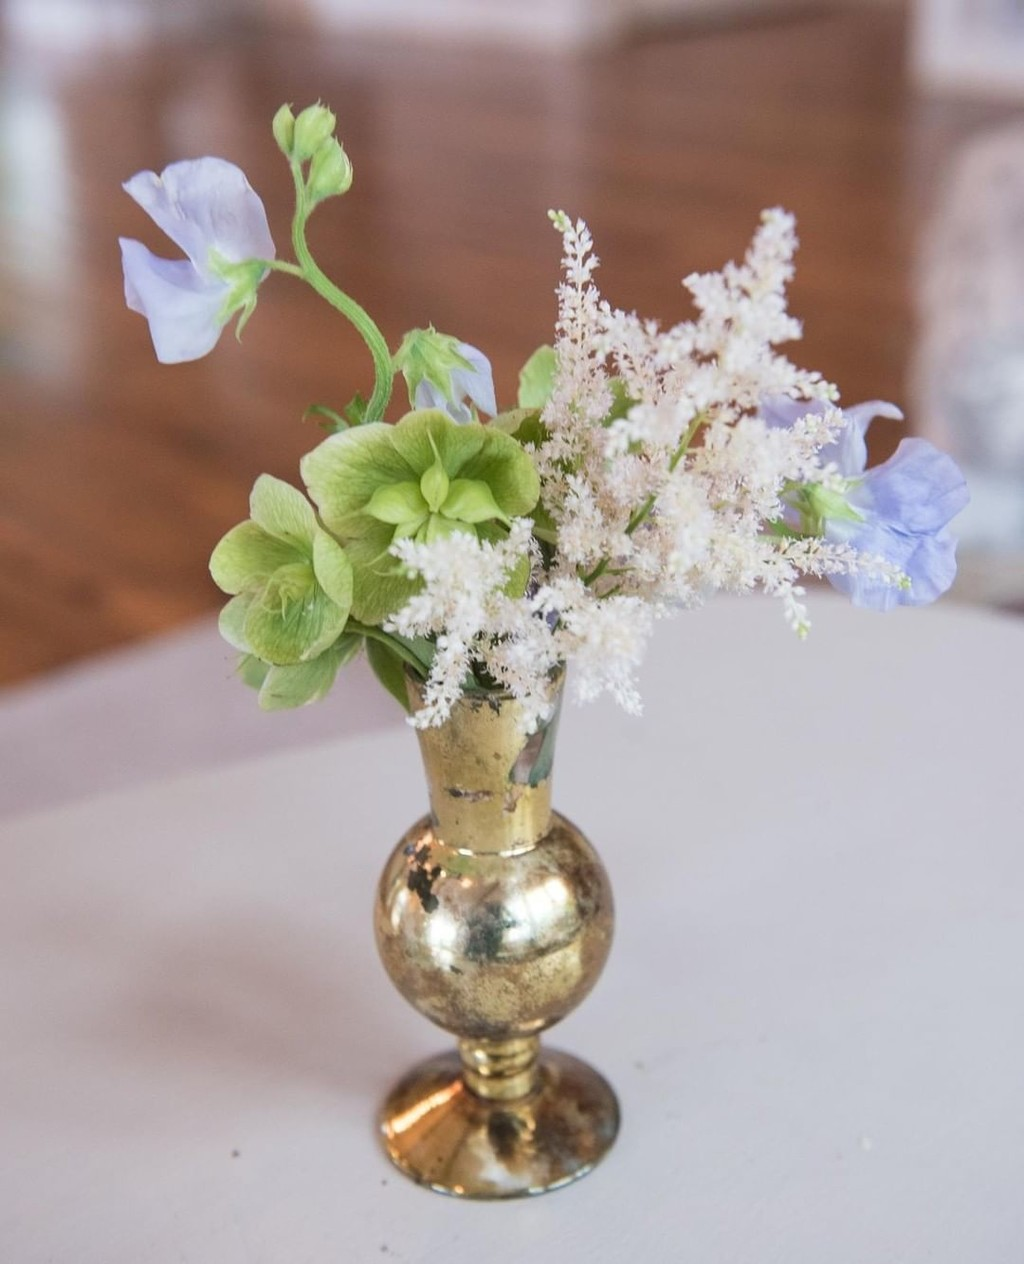 Sweet Pea, and Hellebores, and Astilbe, OH MY 😍⁣